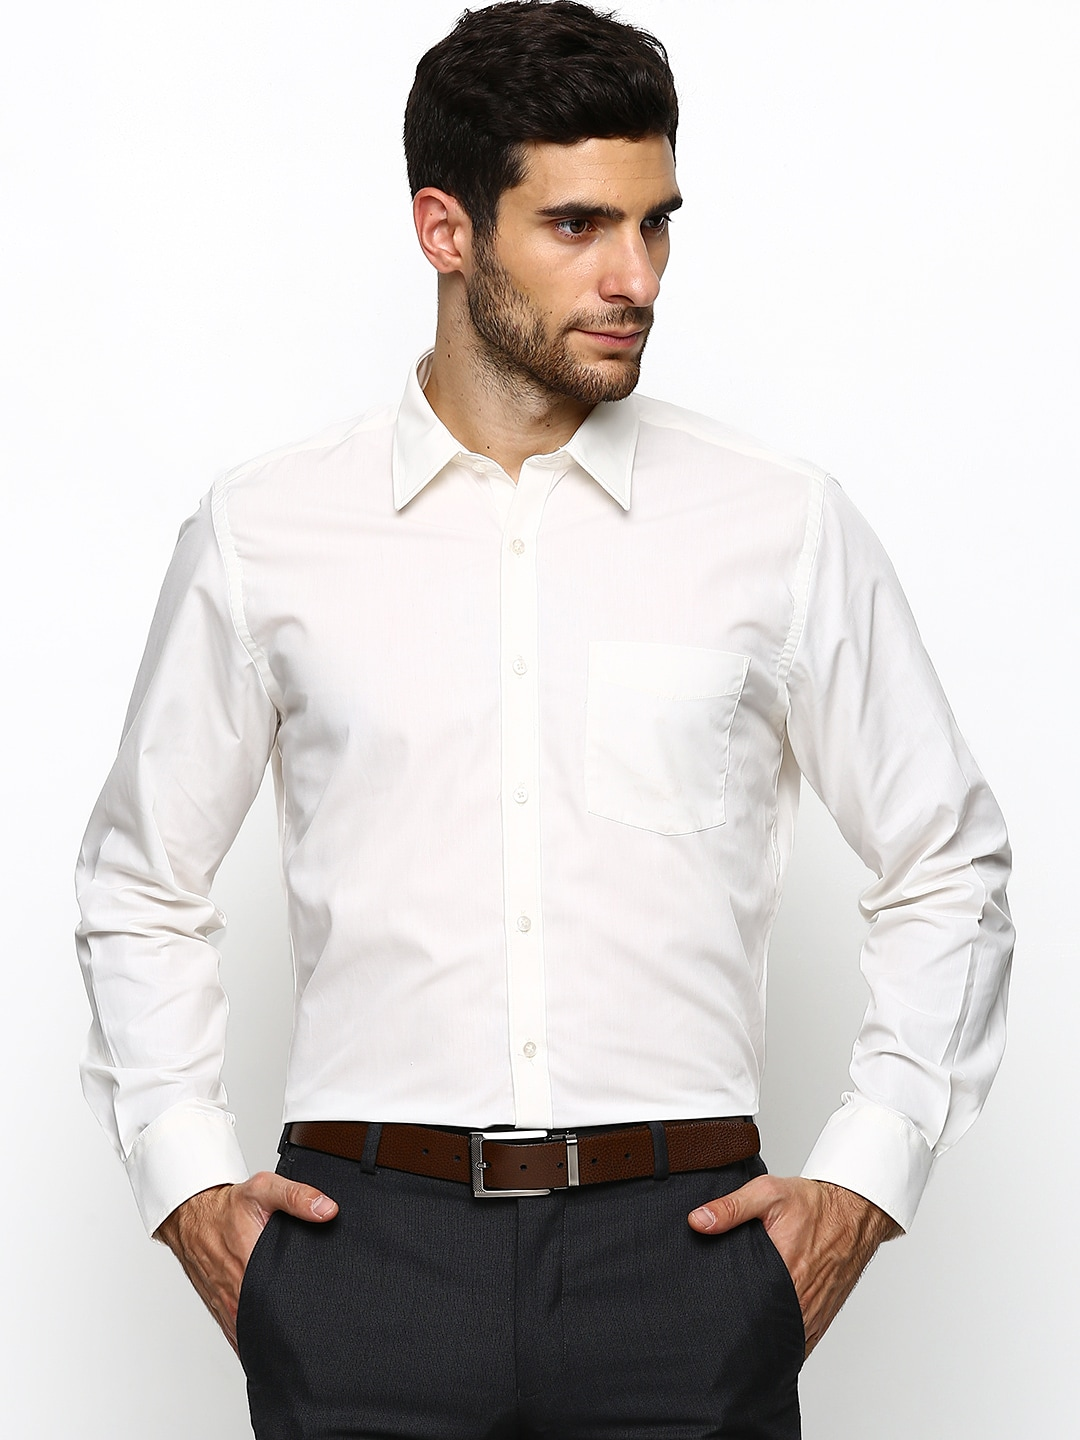 Off white shirt men artee shirt for Mens formal white shirts